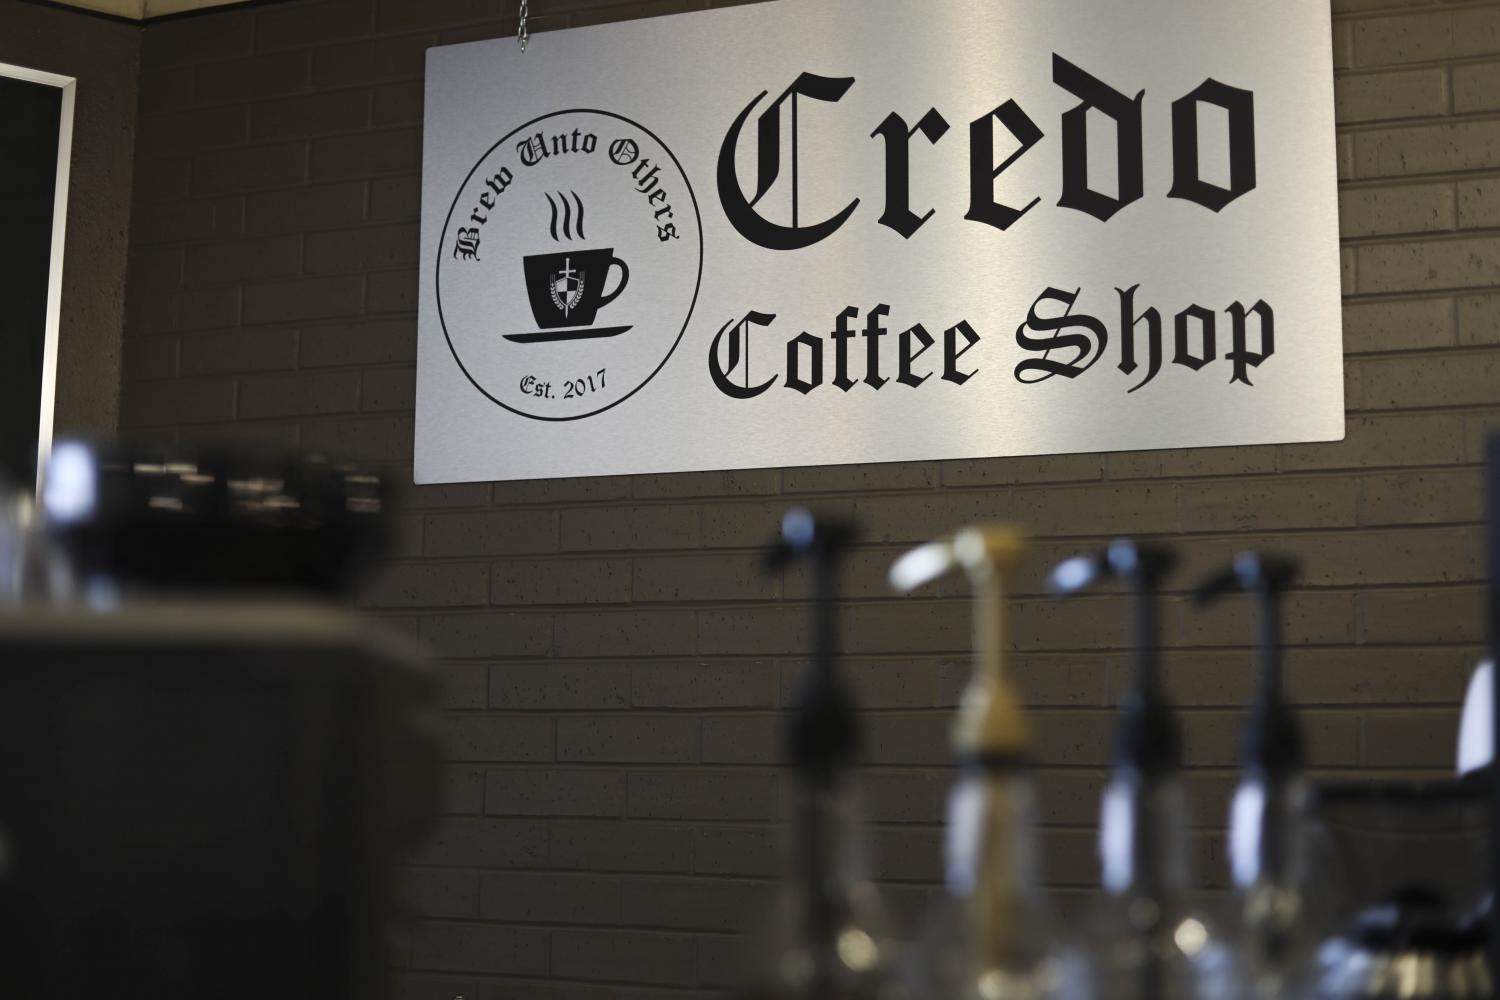 Credo+Coffee+Shop+in+the+basement+of+the+St.+Paul+Catholic+Student+Center+is+set+to+open+Aug.+14.+just+in+time+for+the+Fall+Semester.+